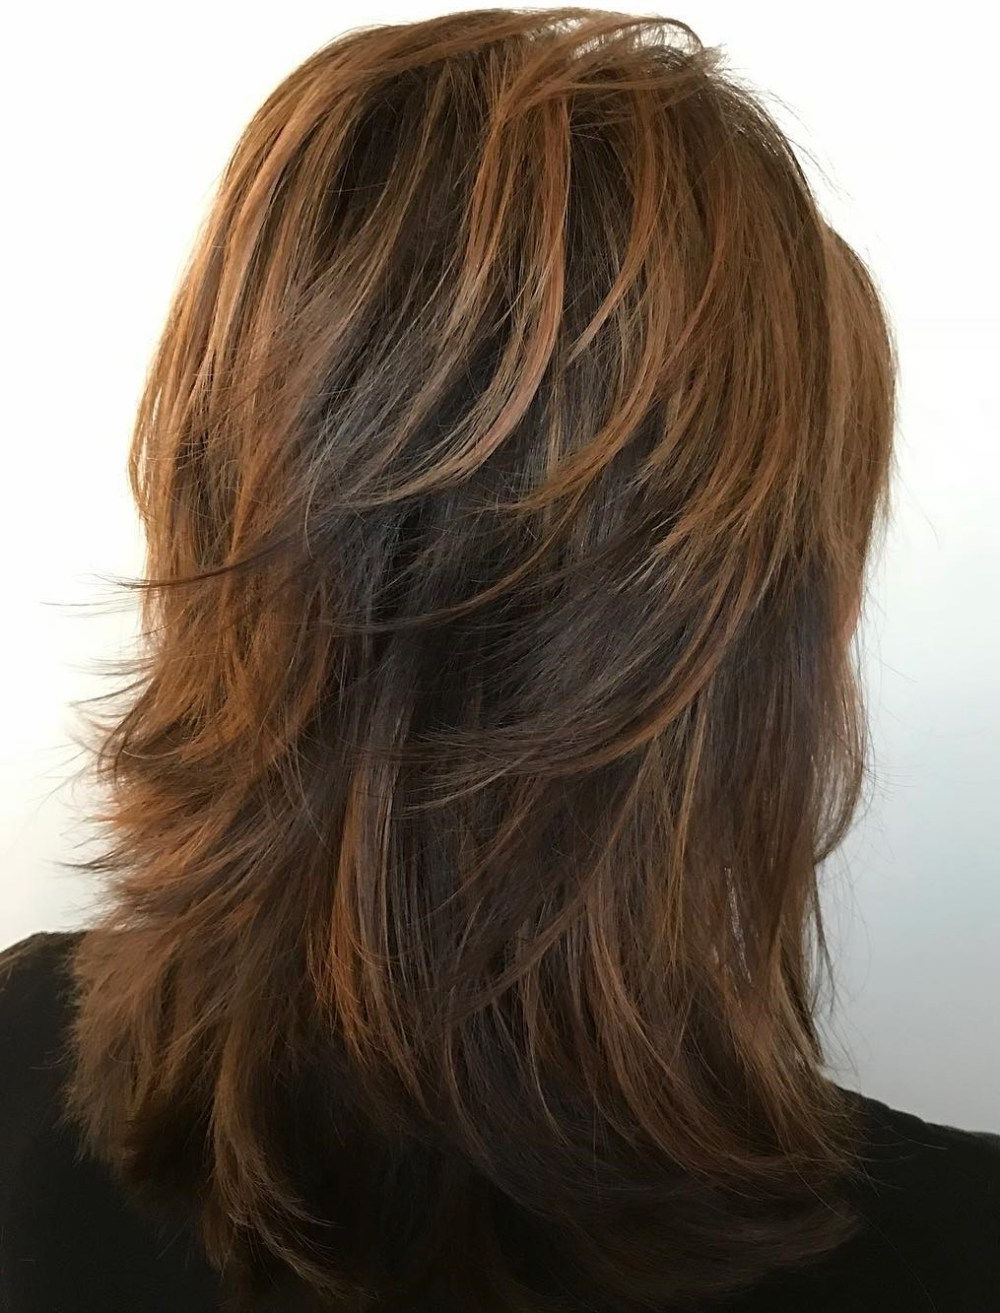 Current Mid Length Feathered Shag Haircuts For Thick Hair Throughout Pin On Hair Cuts / Styles (View 5 of 20)